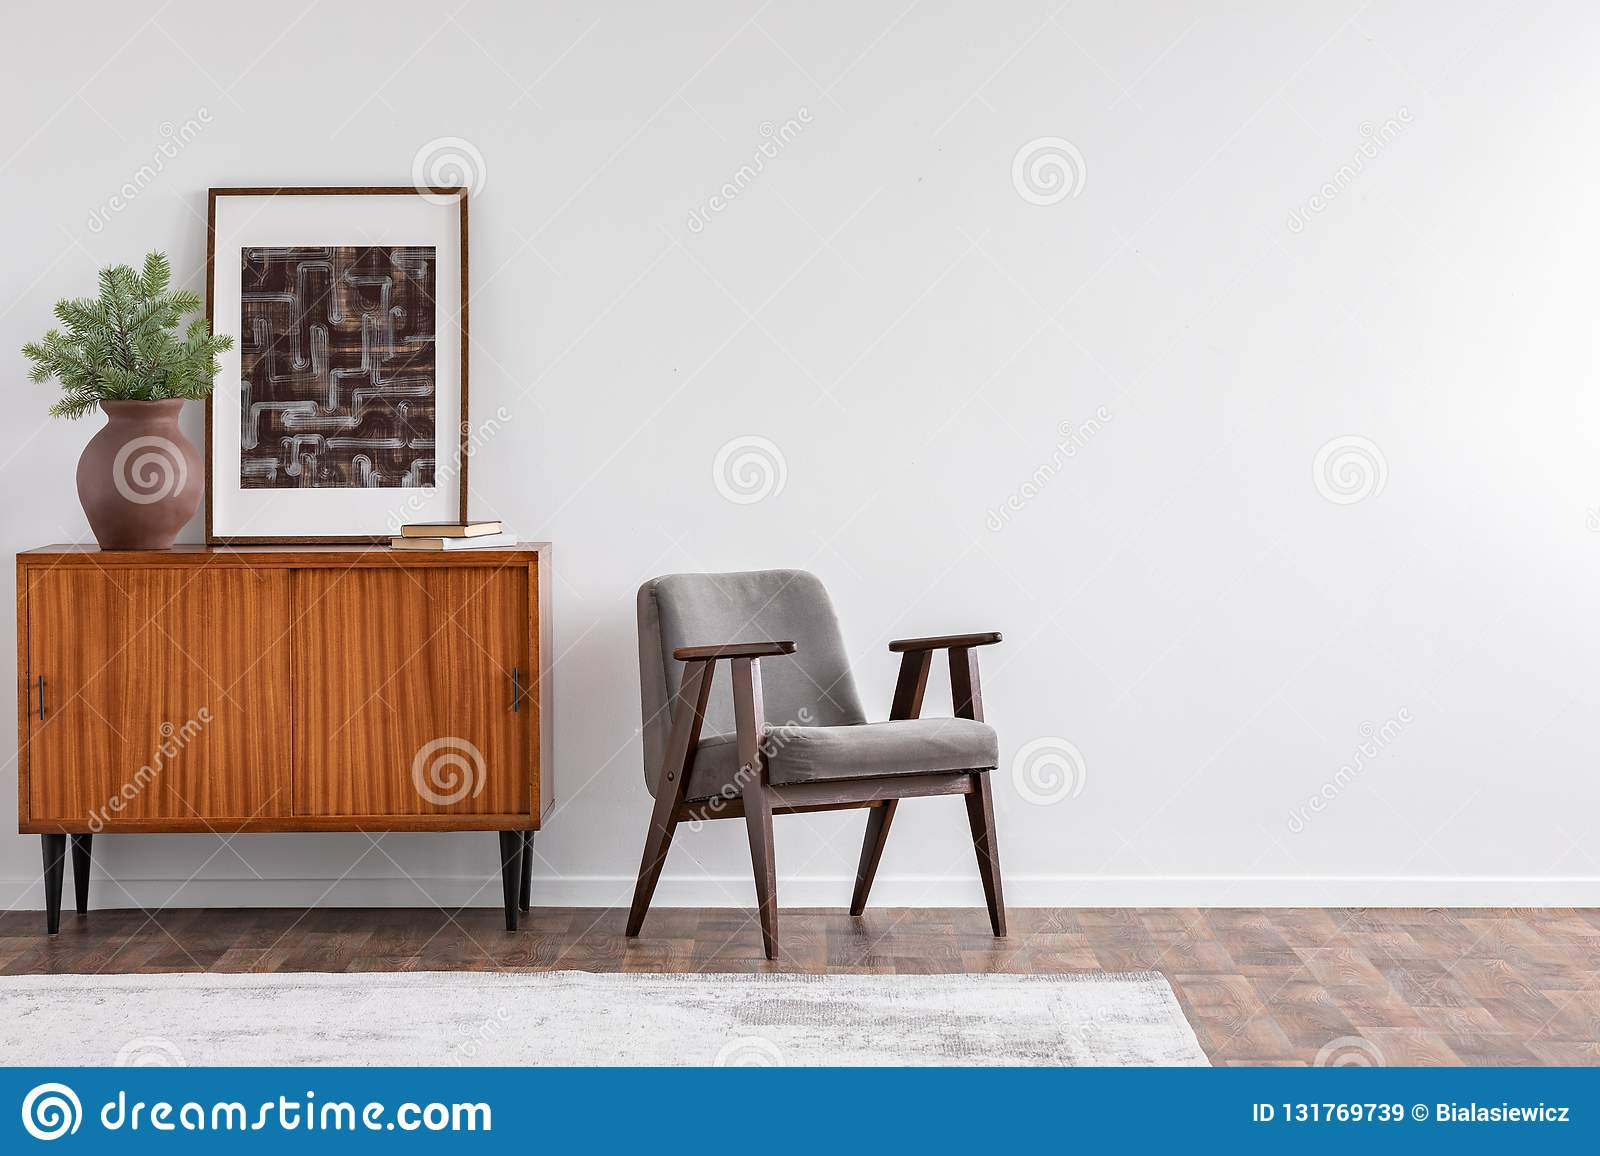 Vintage Living Room Interior With Retro Furniture And Poster ...